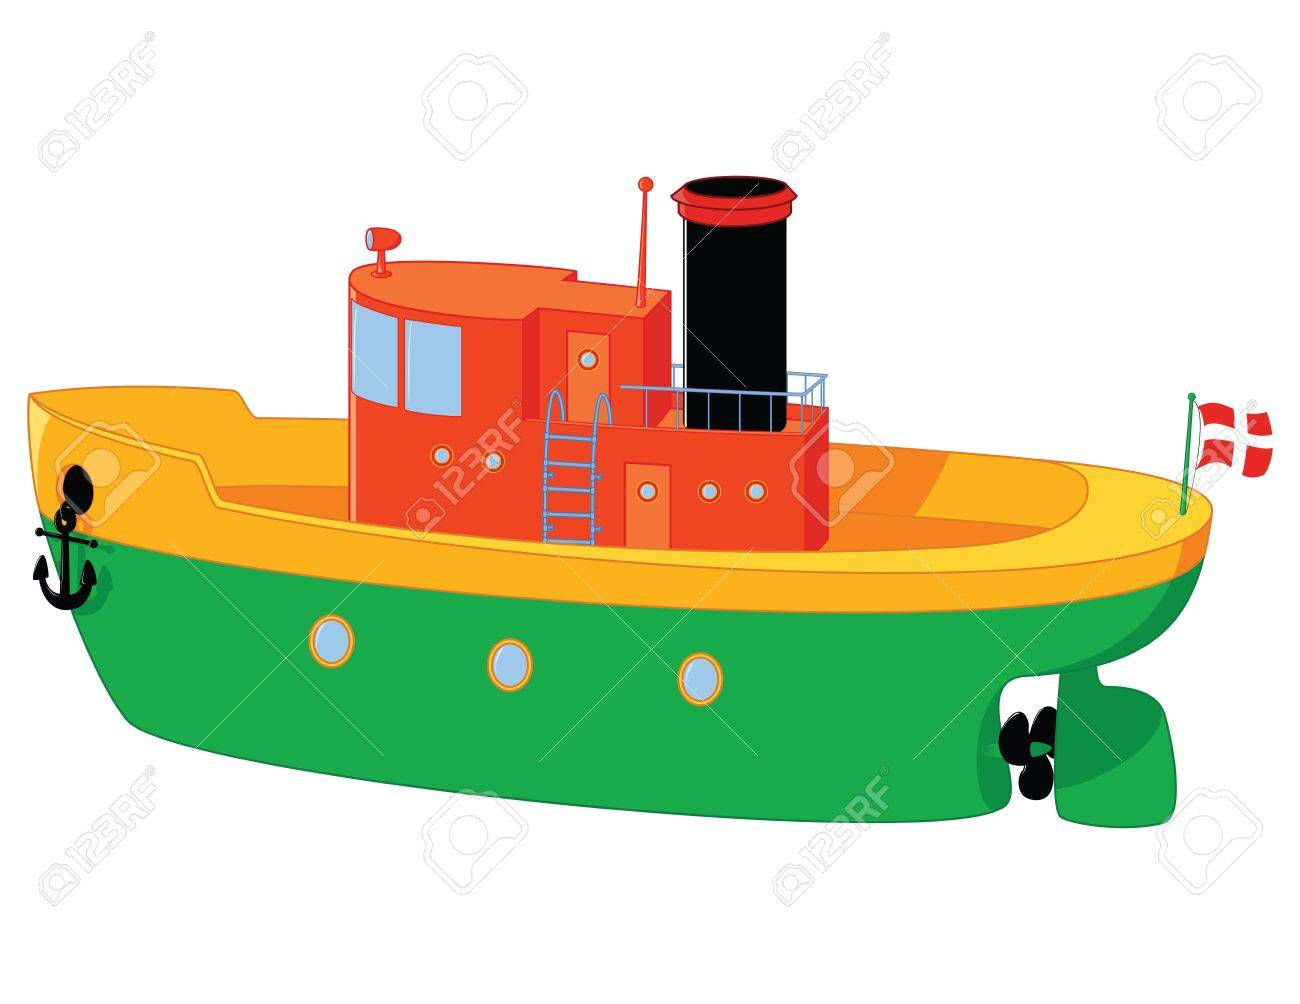 funny boat toy with a lot of details Stock Vector - 11299266